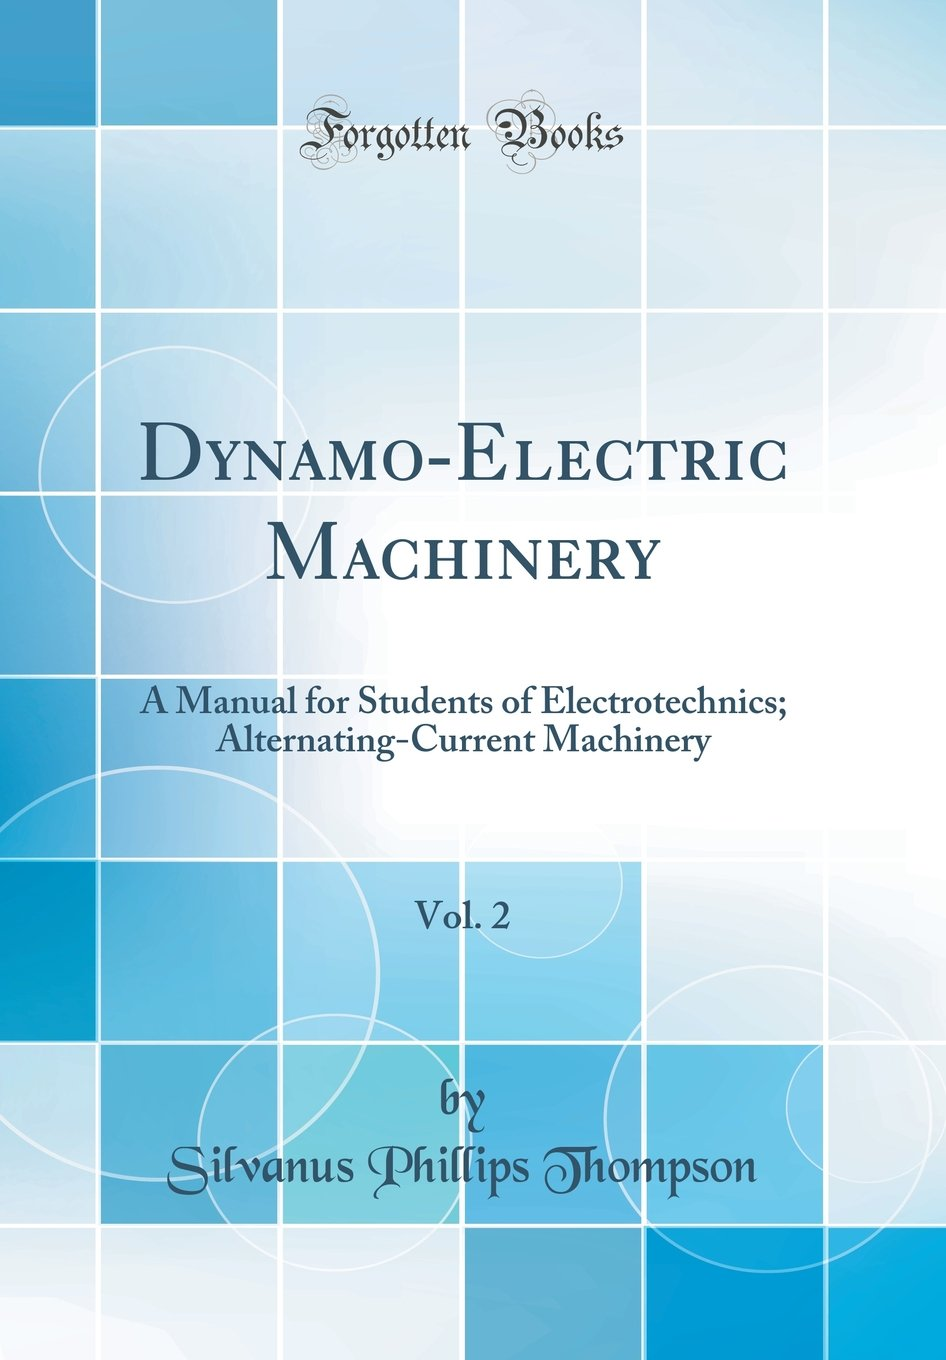 Dynamo-Electric Machinery, Vol. 2: A Manual for Students of Electrotechnics; Alternating-Current Machinery (Classic Reprint) pdf